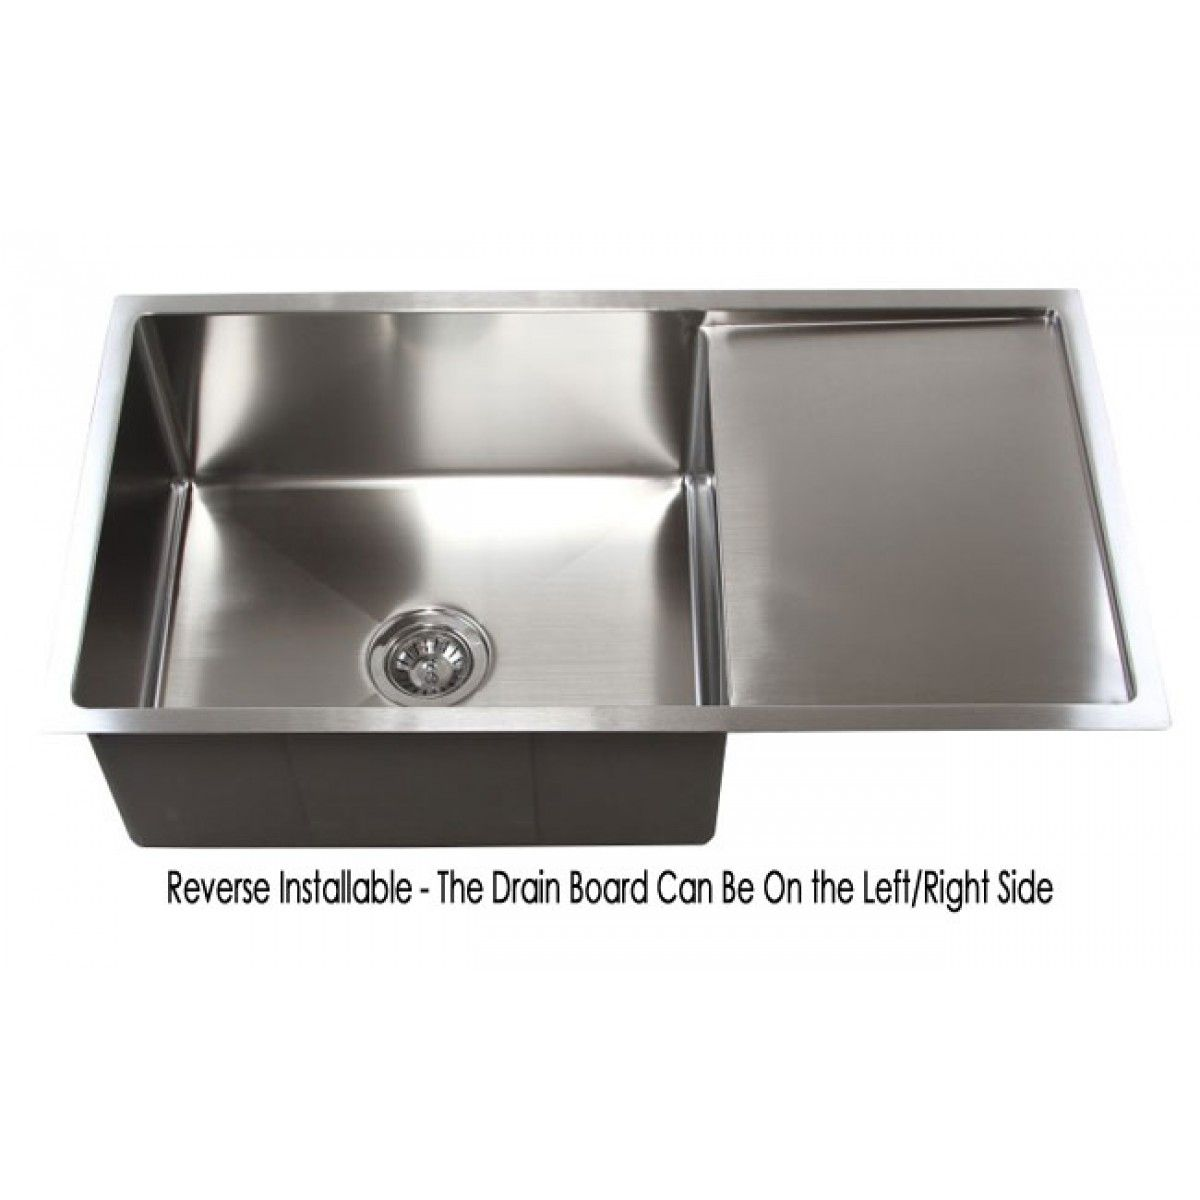 36 Inch Stainless Steel Undermount Single Bowl Kitchen Sink With Drain Board